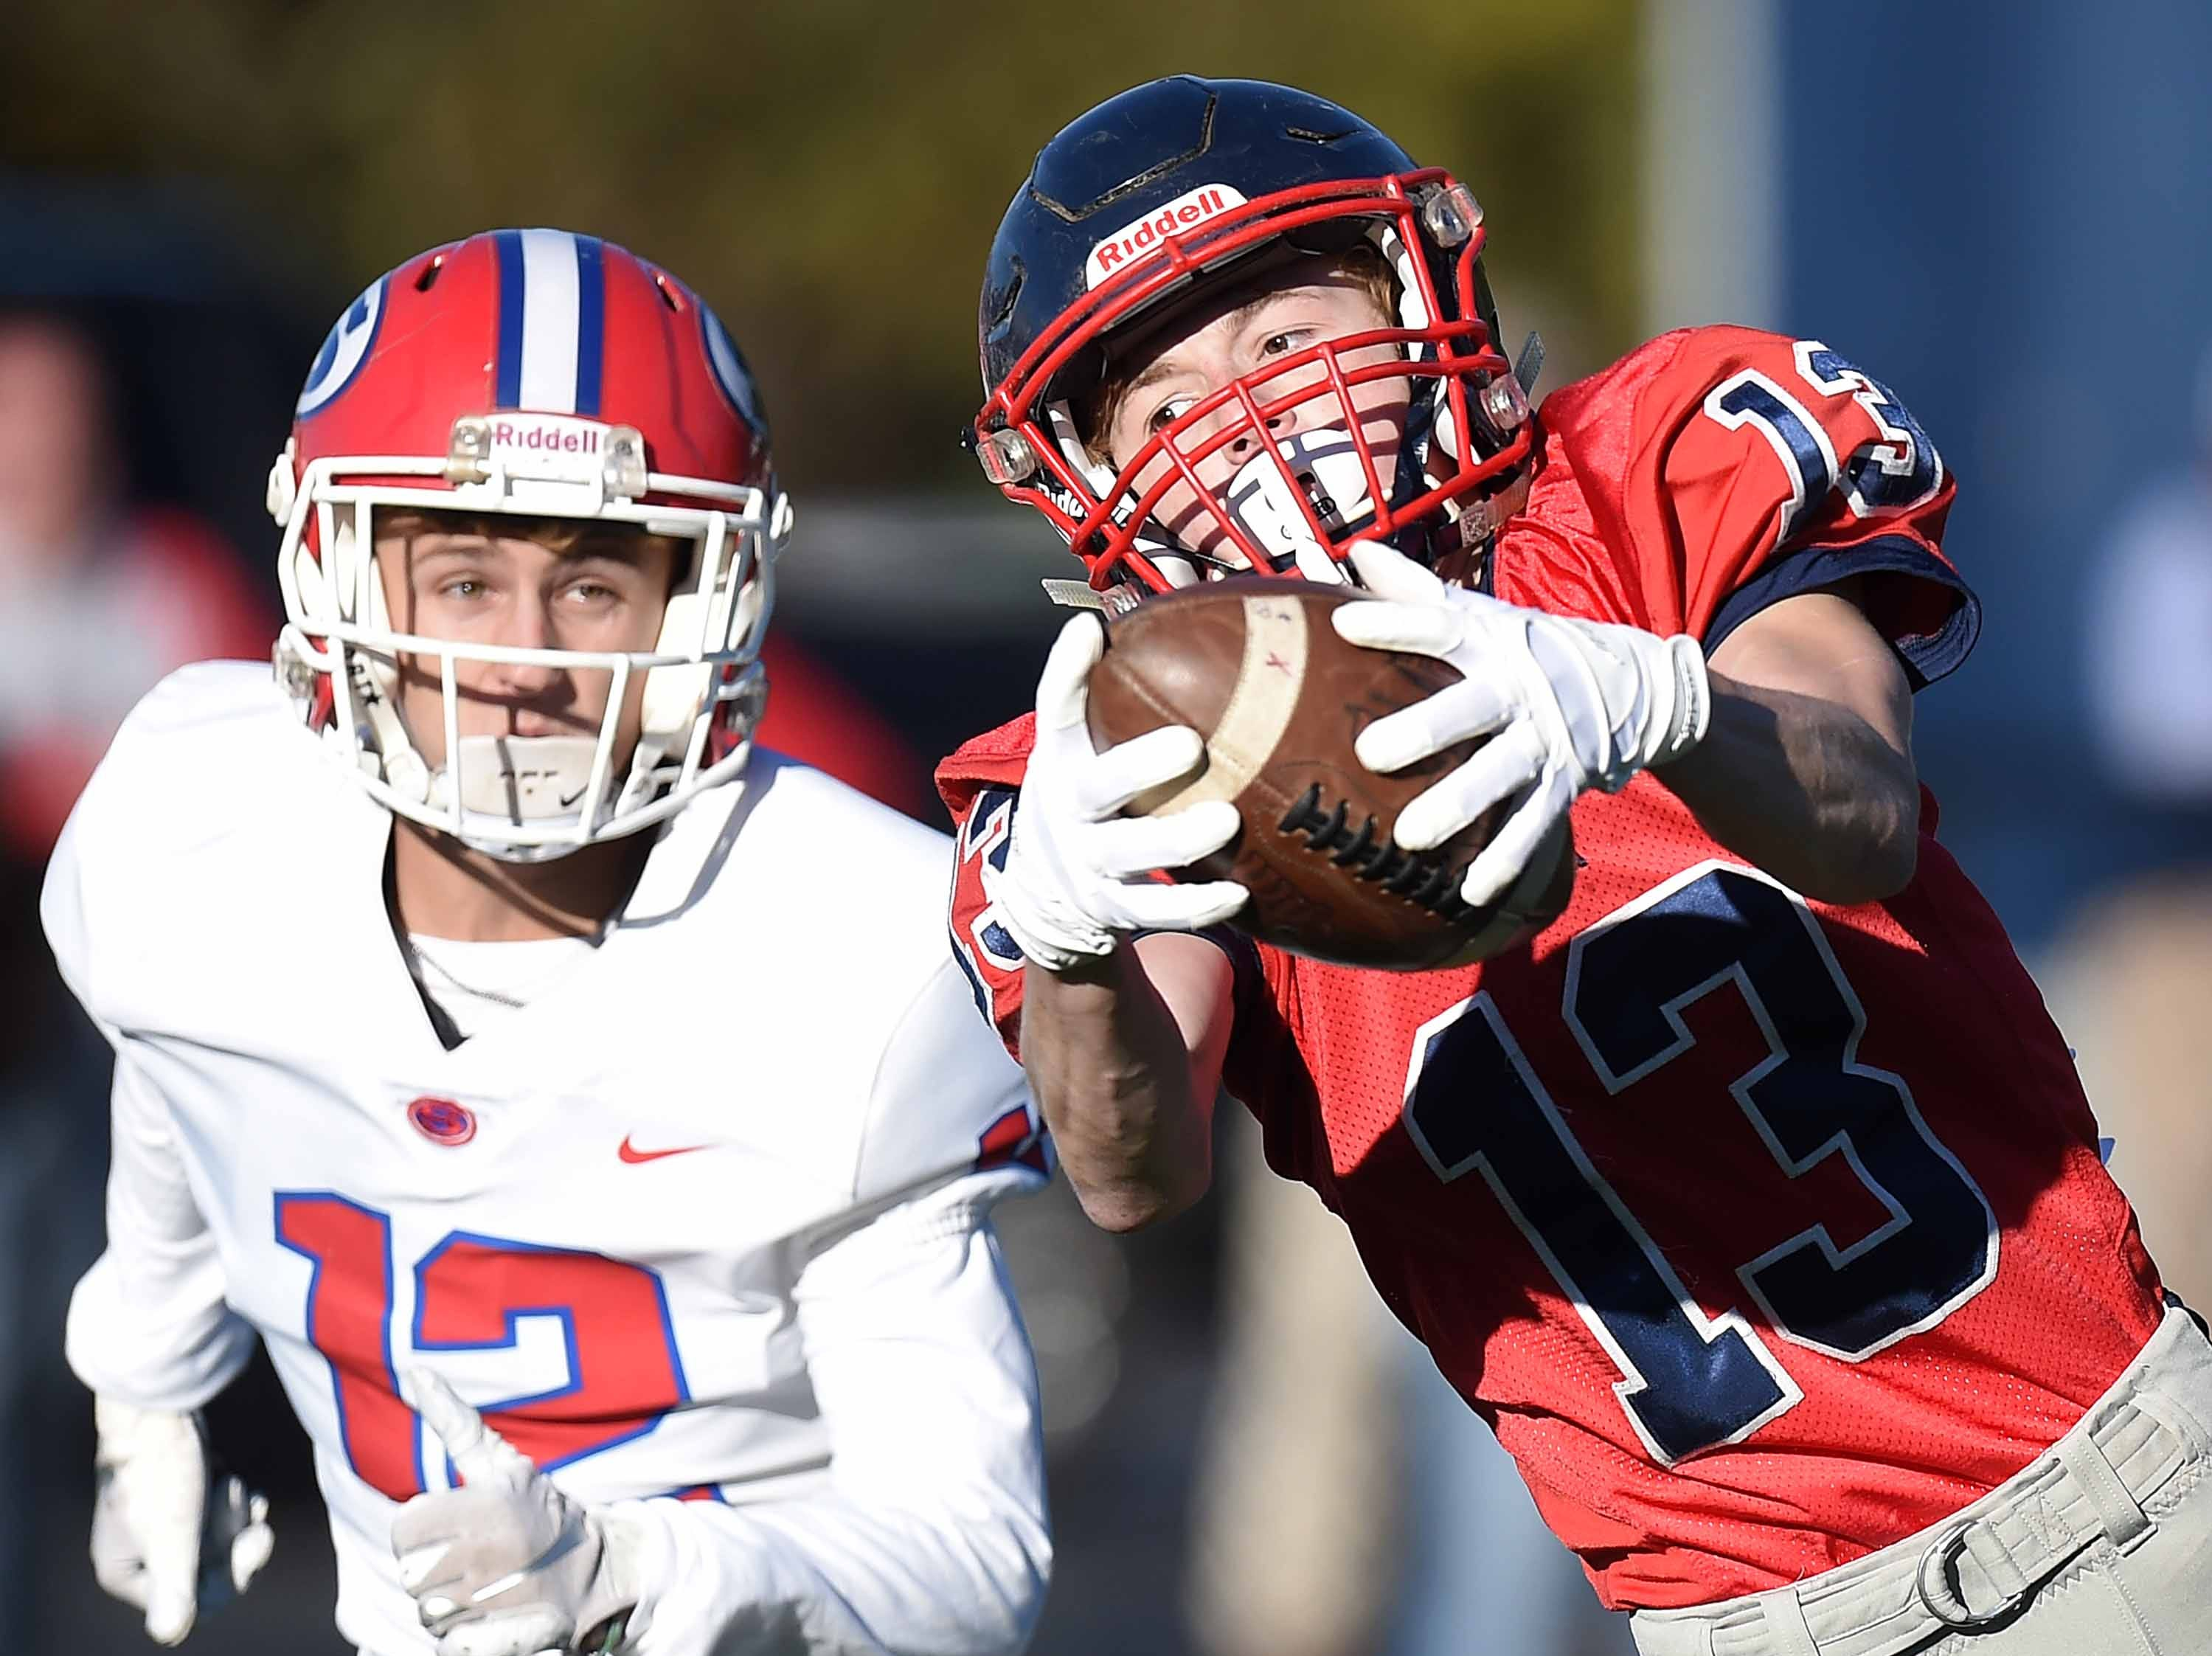 Lamar School's Jacob Partridge (13) catches a deep pass against Simpson Academy on Thursday, November 15, 2018, in the MAIS Class AAAA-D2 Football Championship at Jackson Academy in Jackson, Miss.